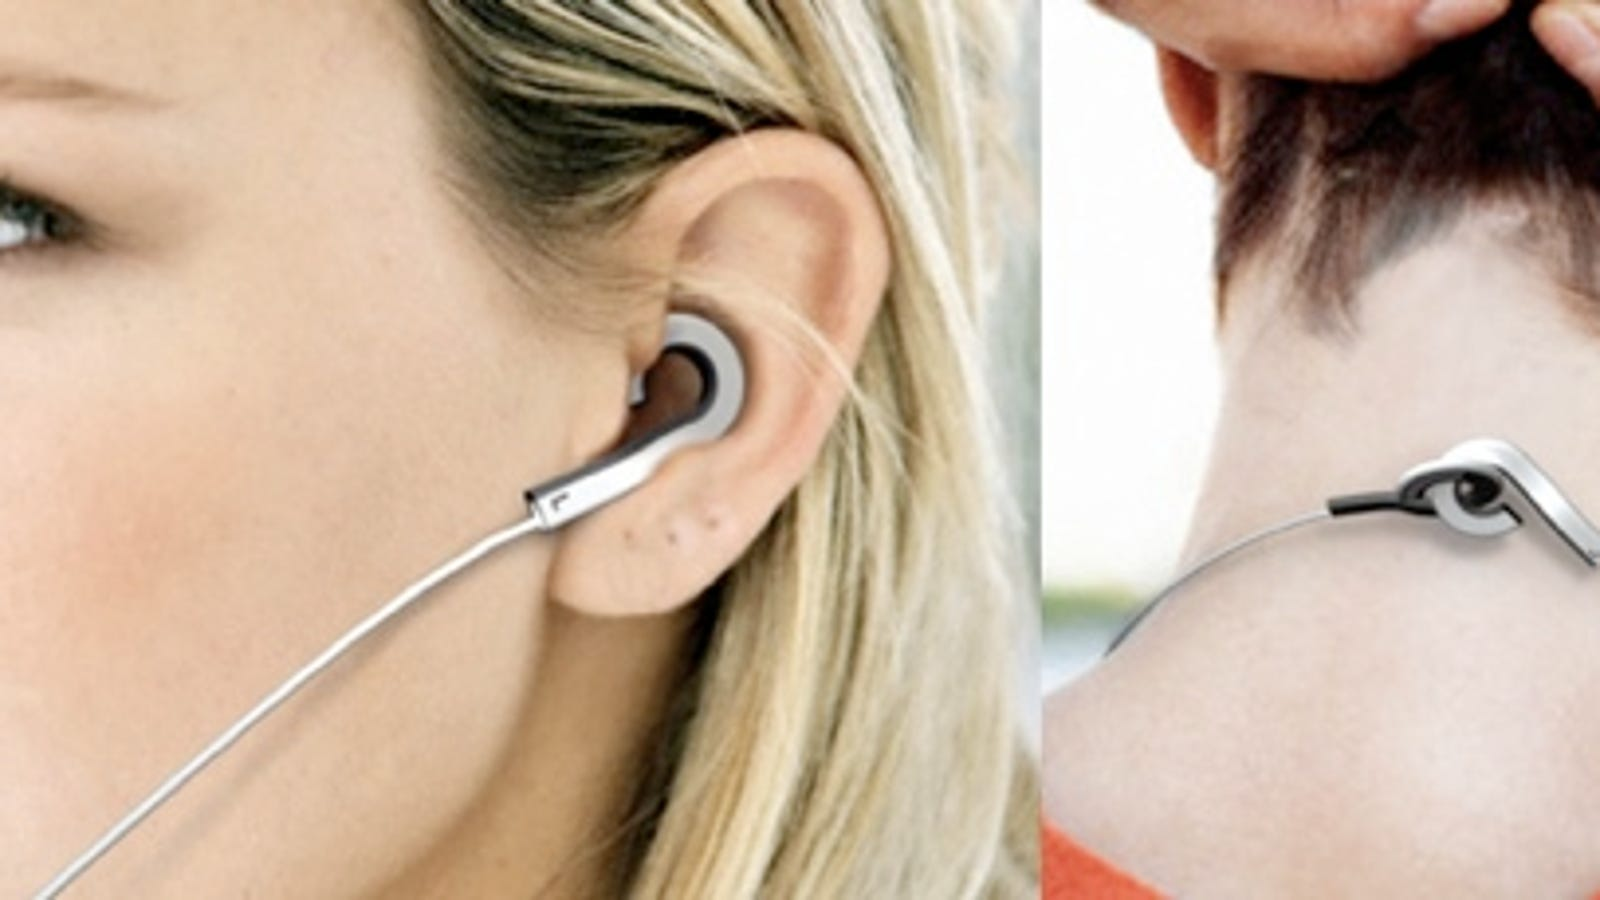 headphone splitter with amp - Holeder Earphones Concept Avoids Bacteria By Hanging in Your Ear